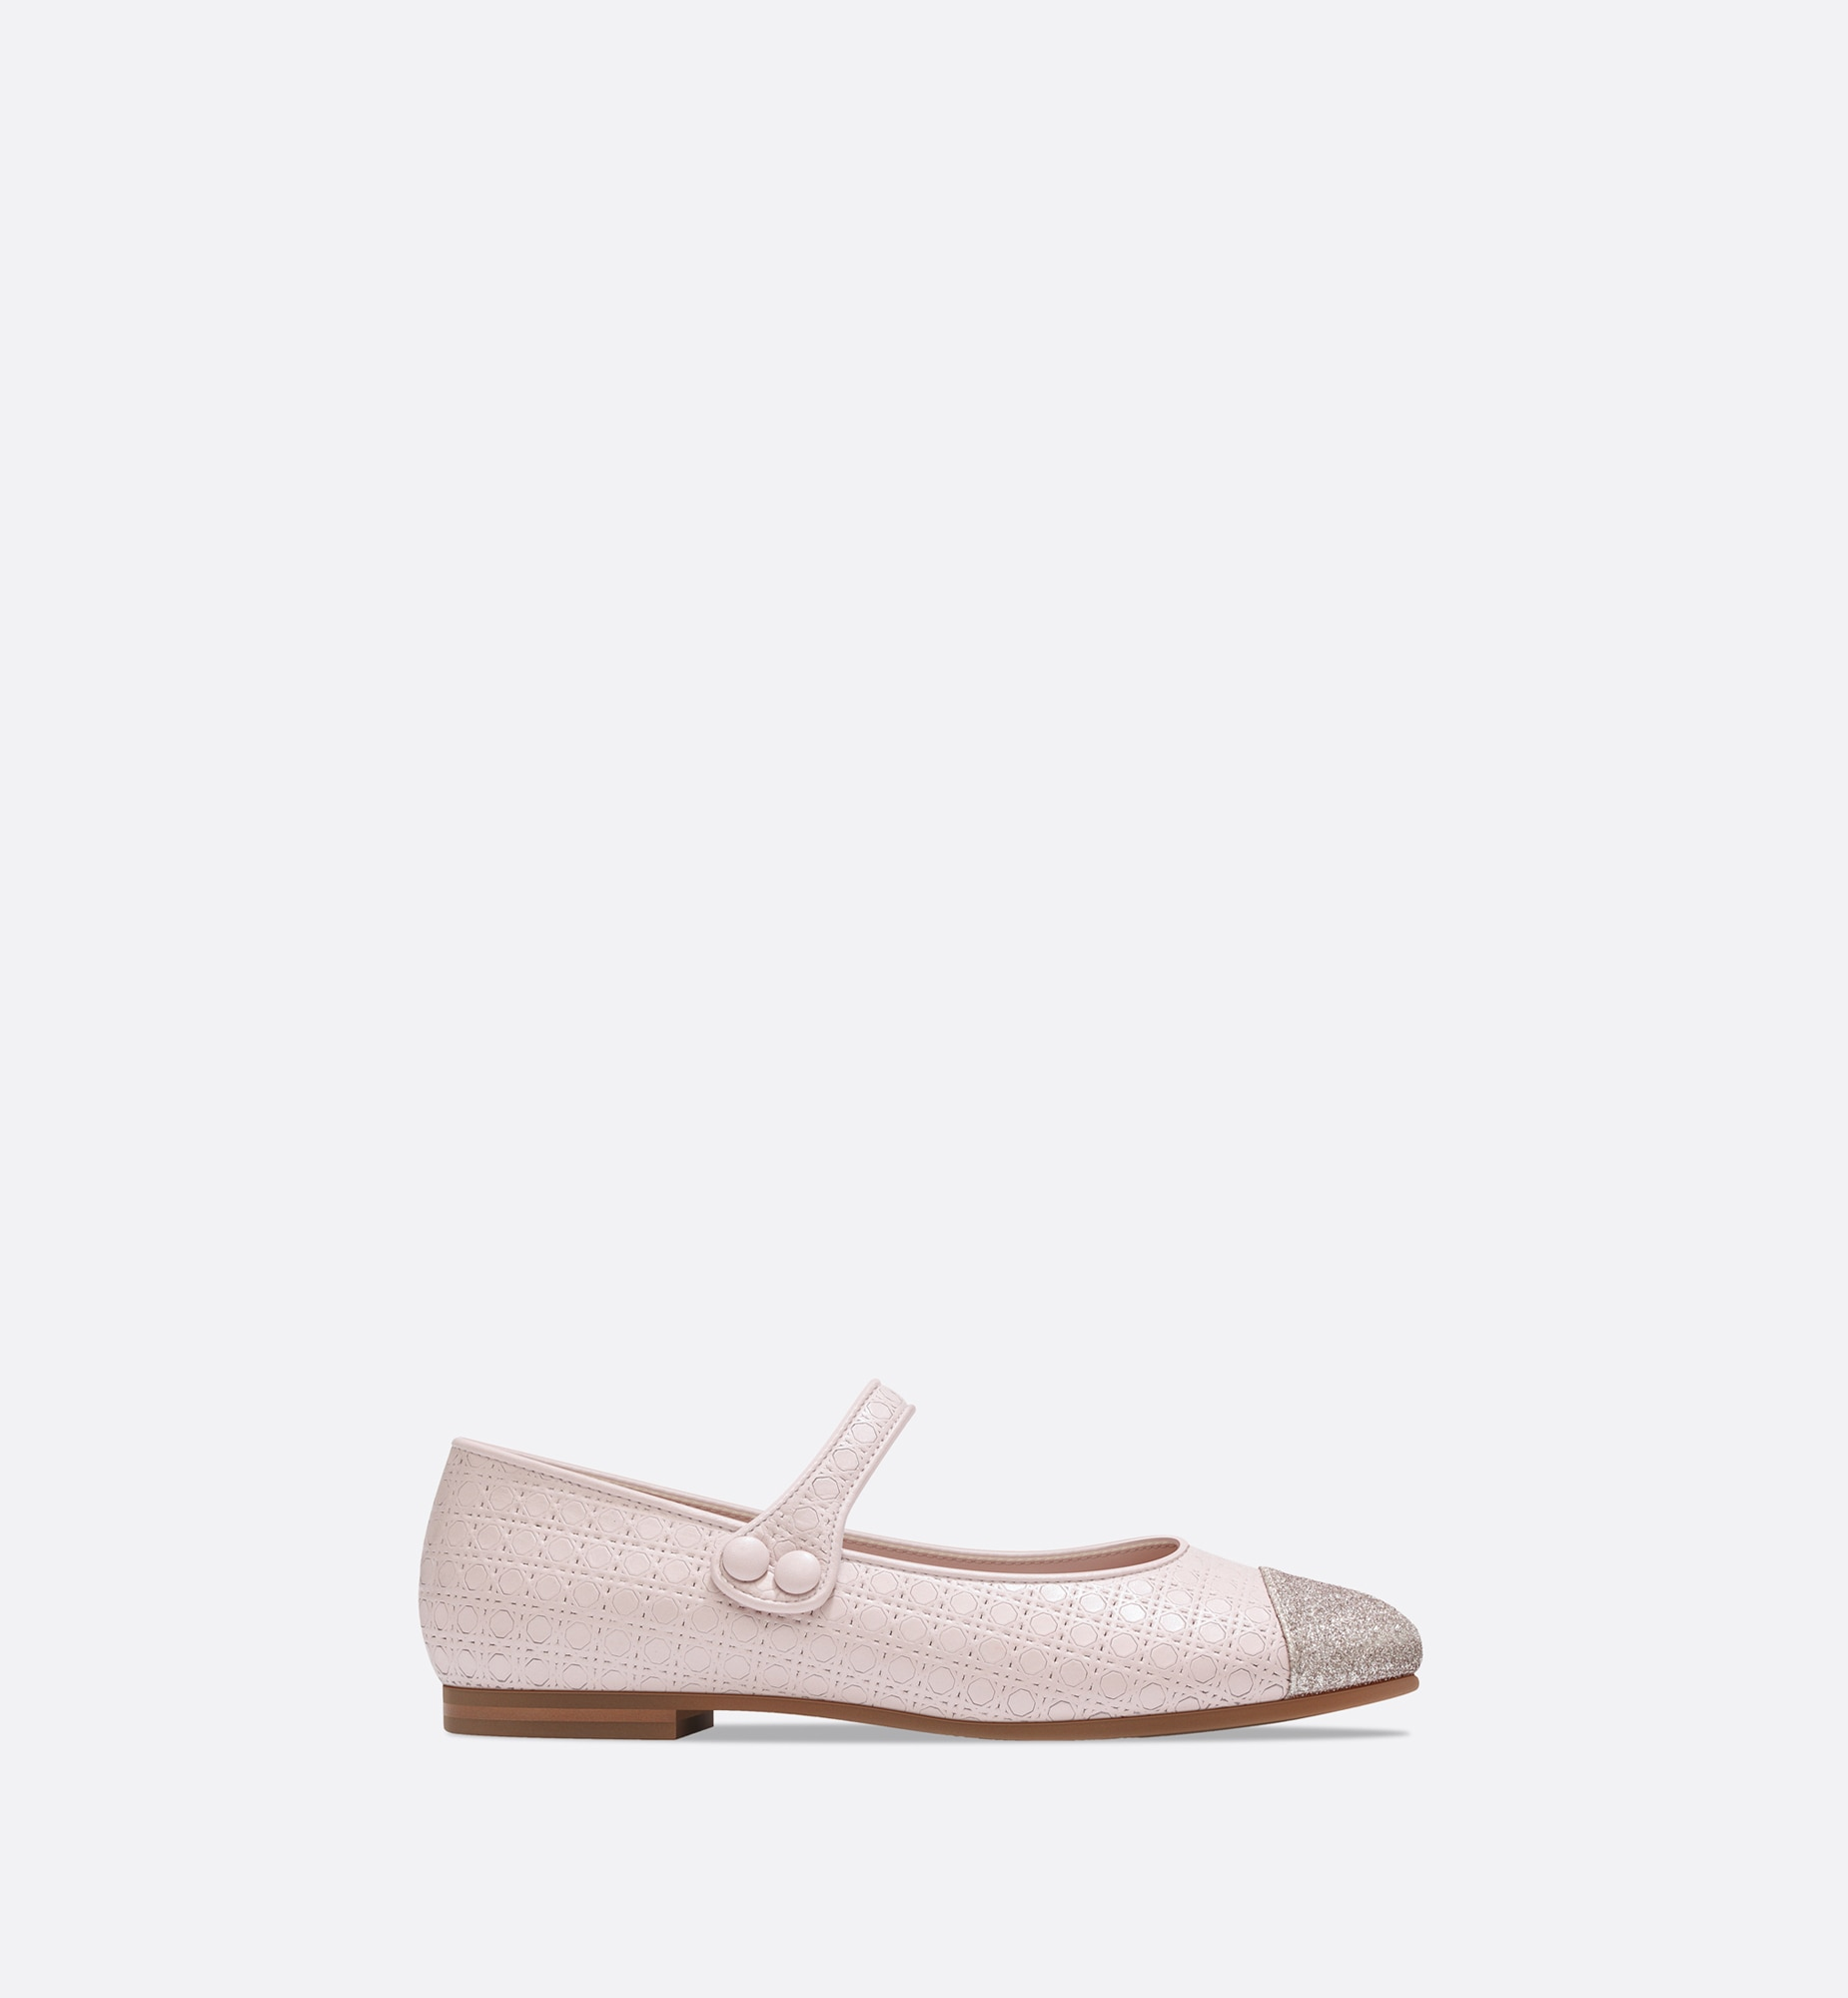 Ballerina Flat Profile view